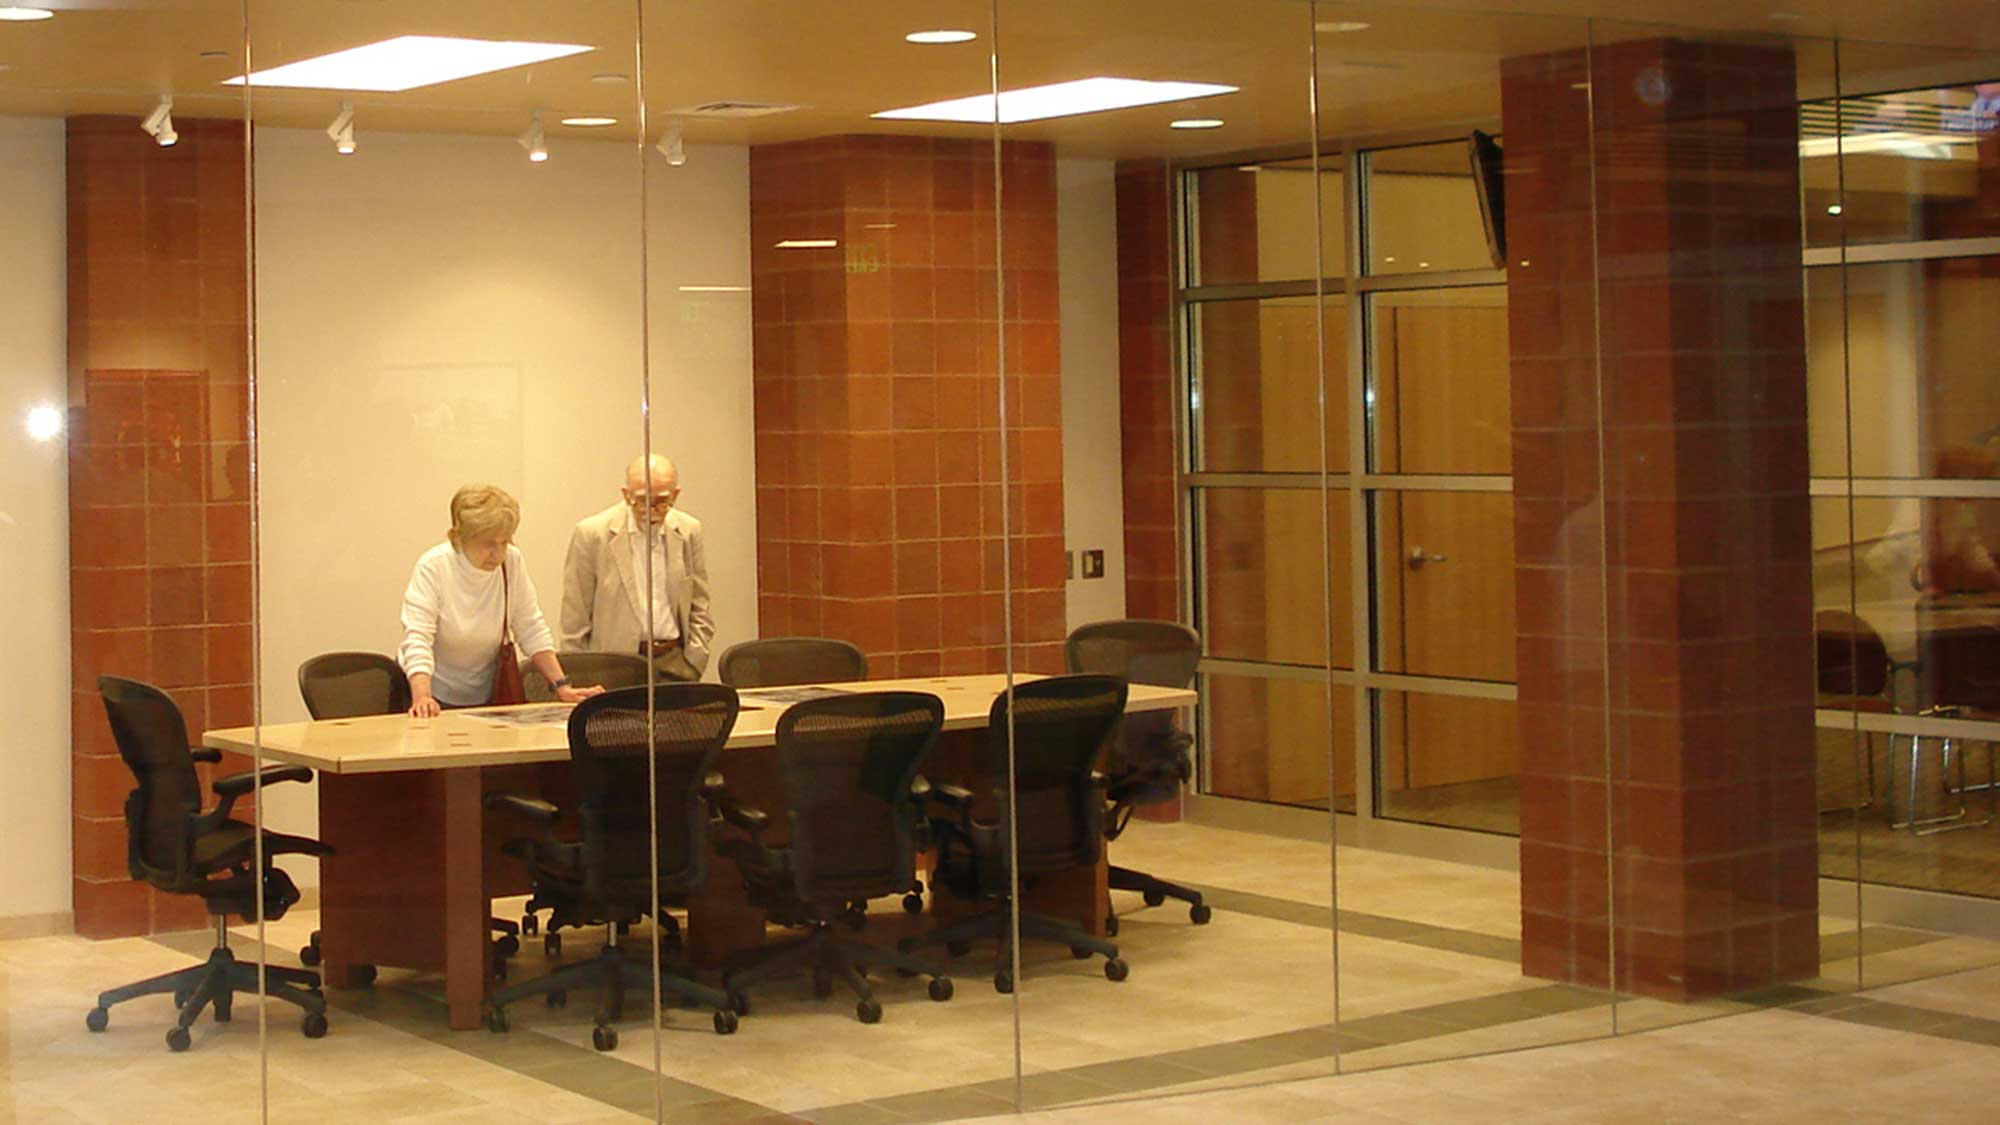 Clients meet at a large table in a room made of glass walls